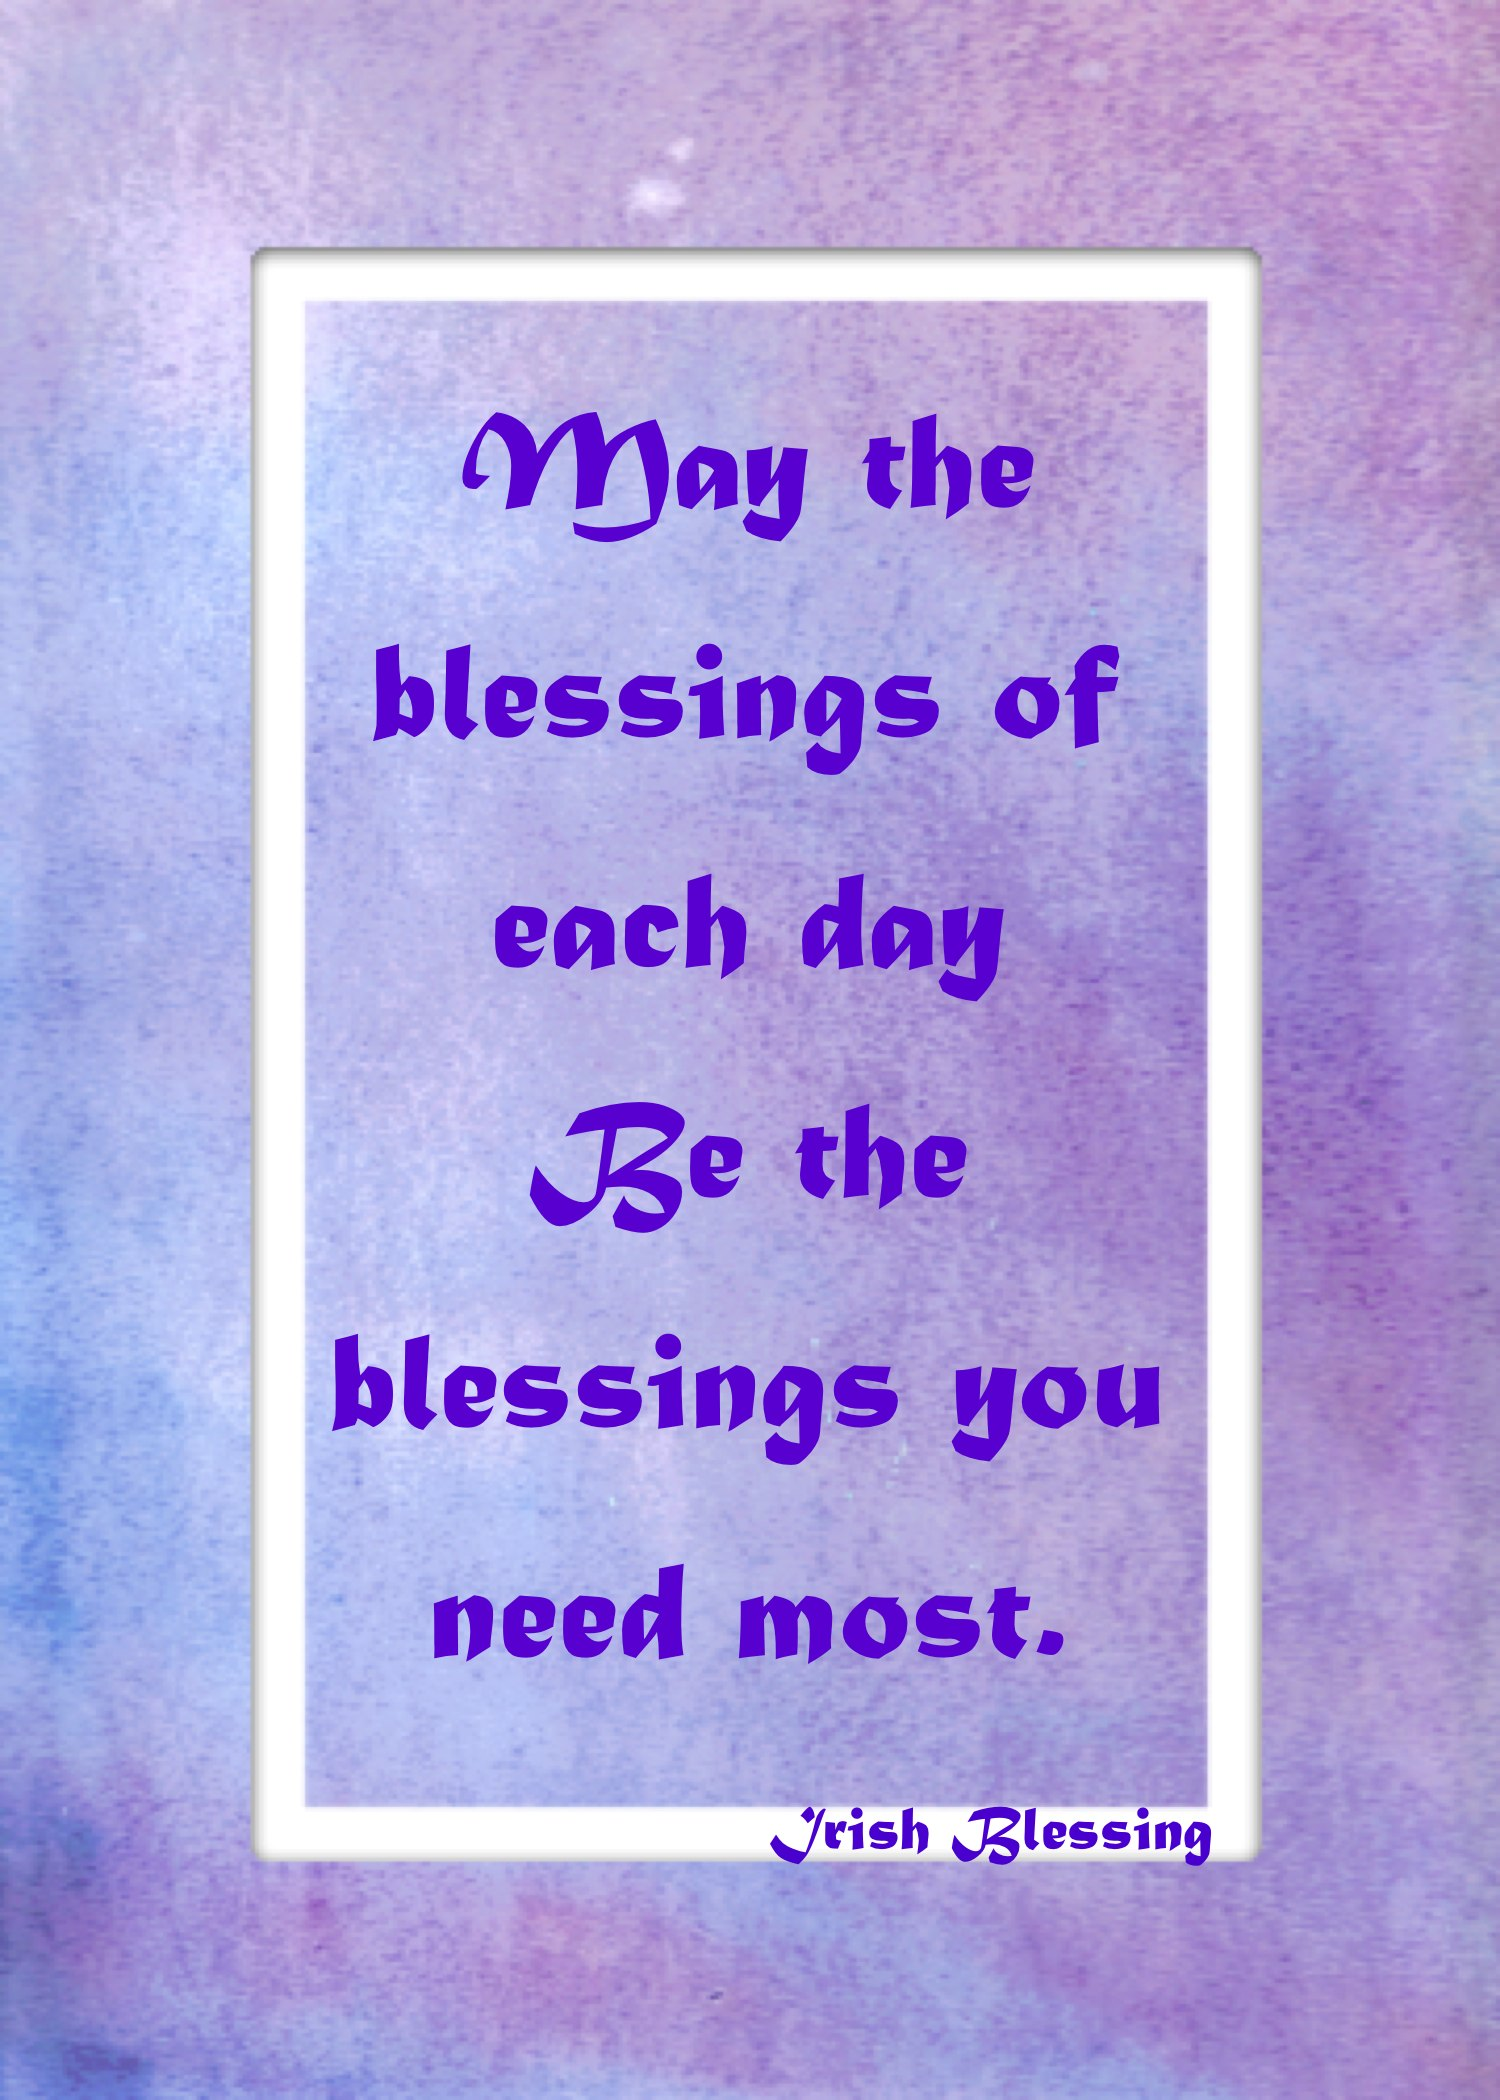 Irish Blessing May The Blessings Of Each Day Well Wishers Group